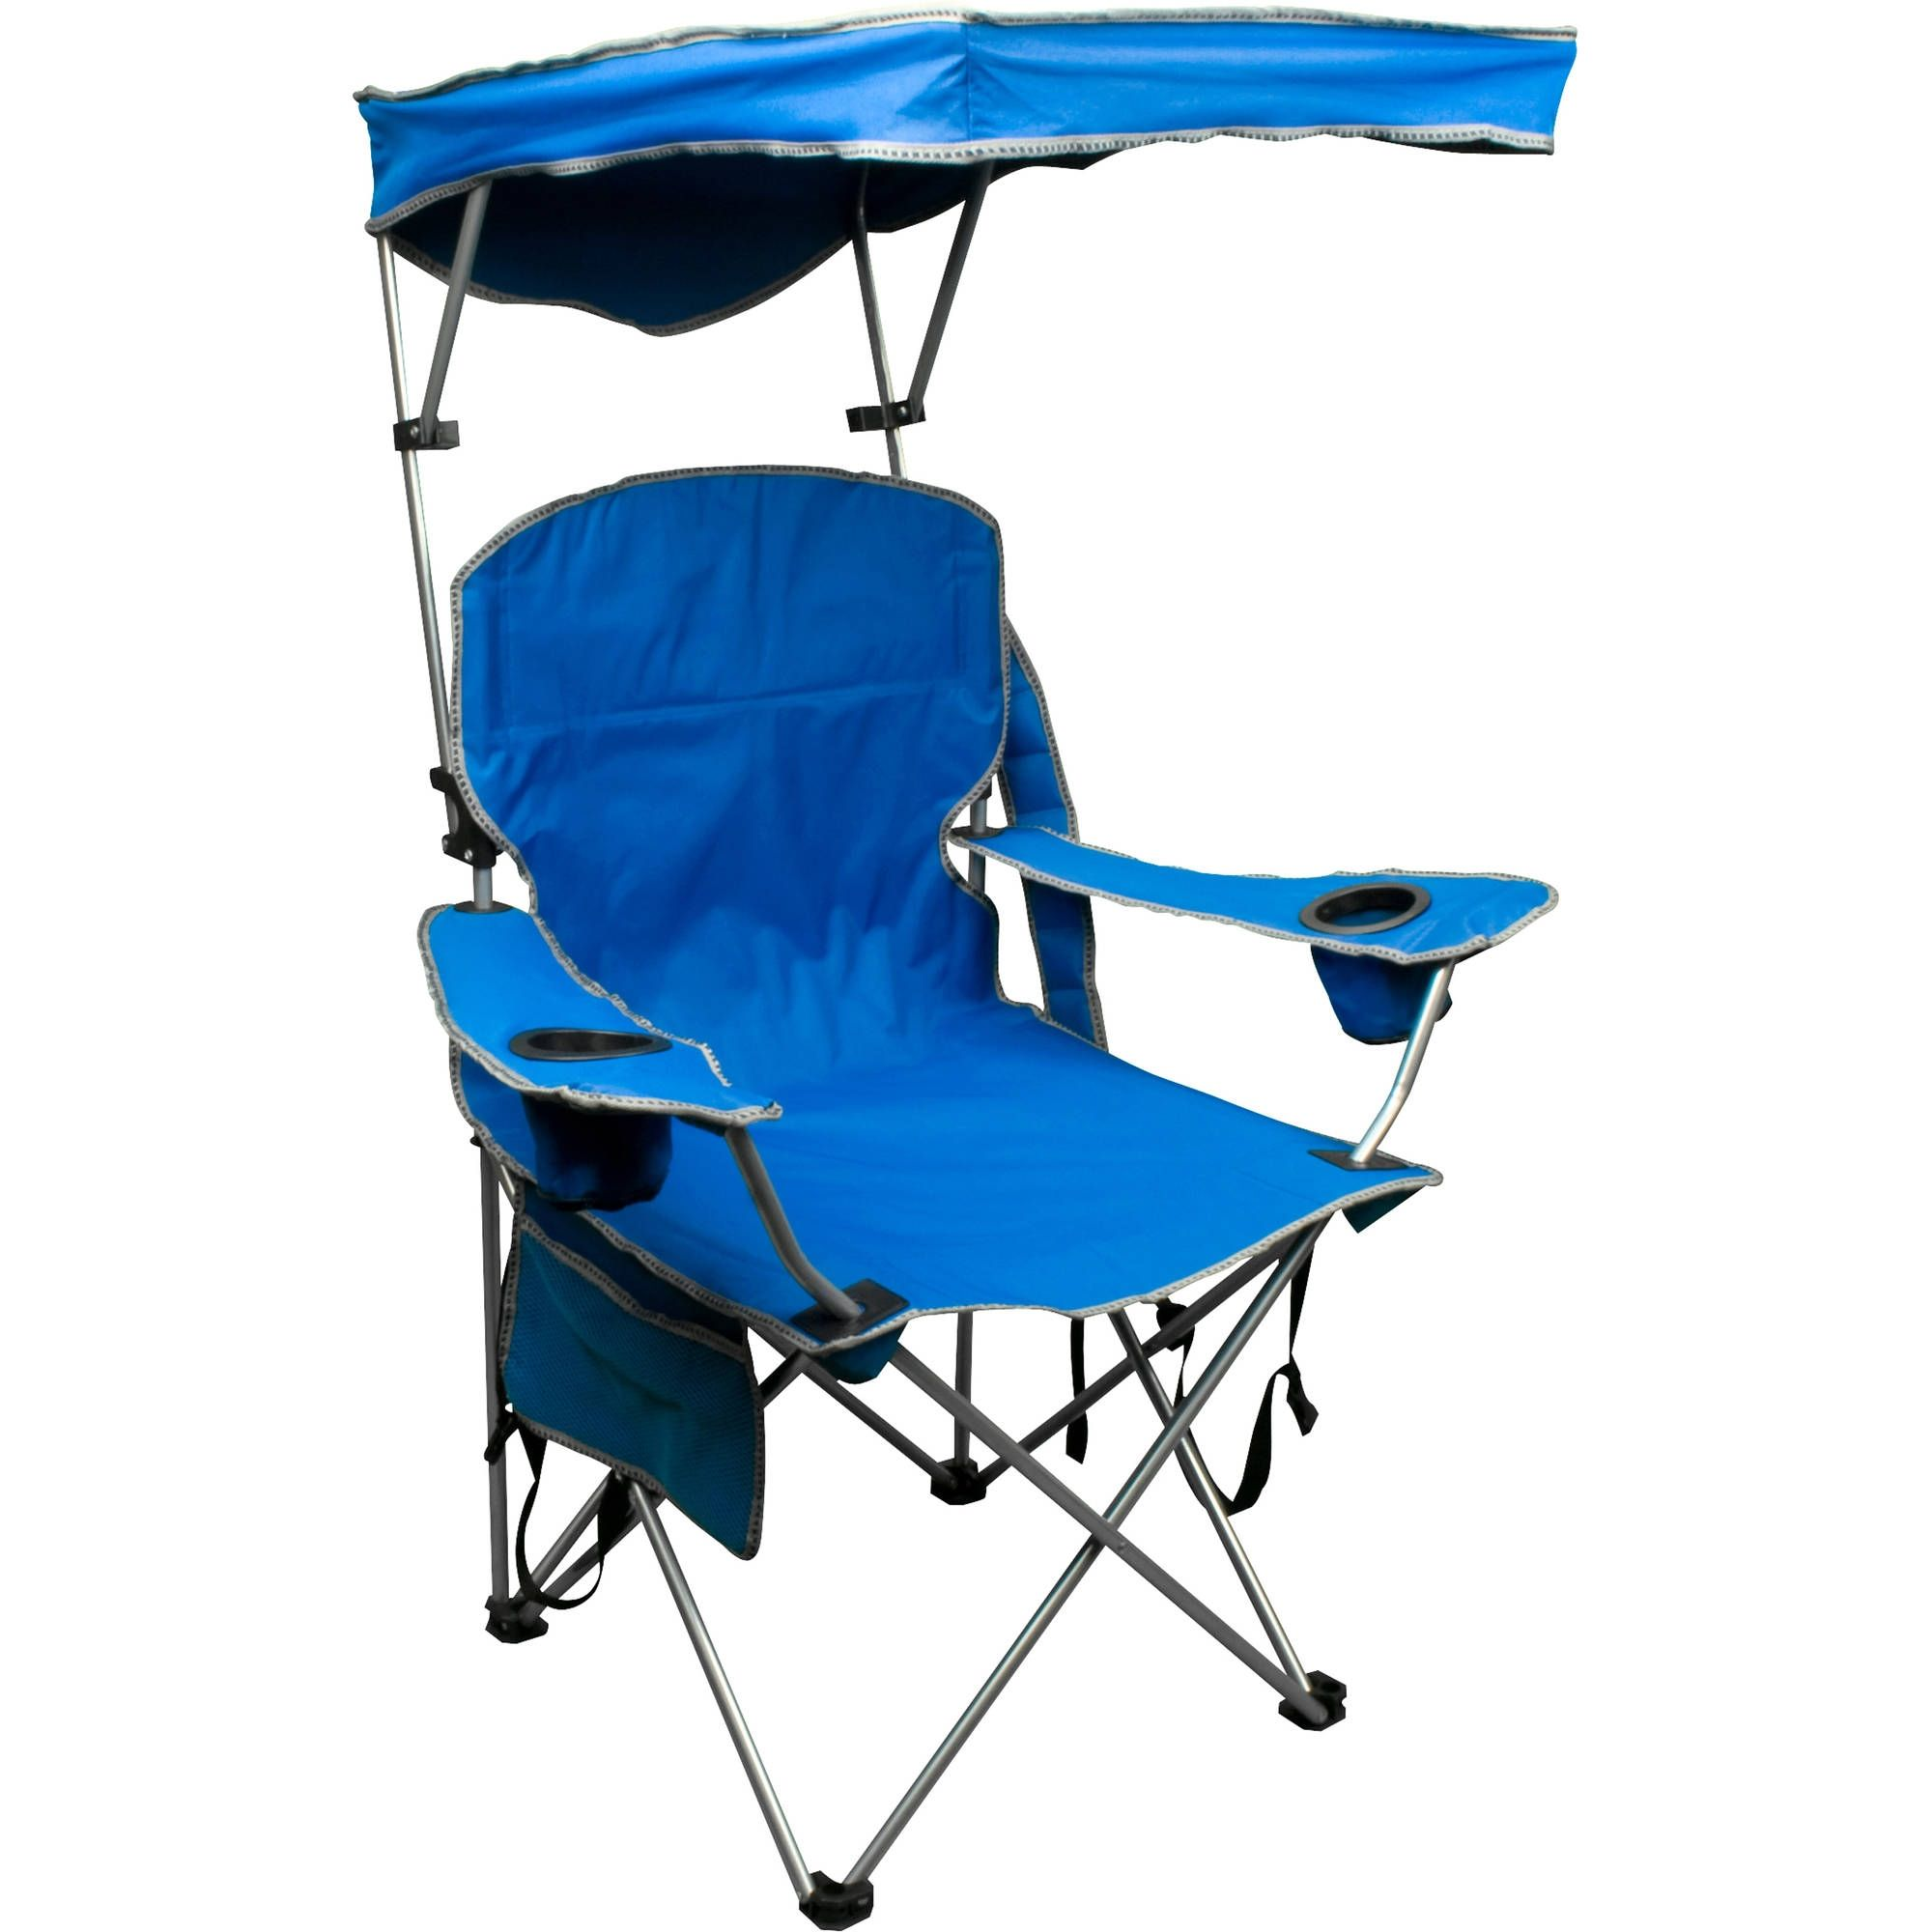 Coleman Folding Chairs With Canopy Beach chair with canopy